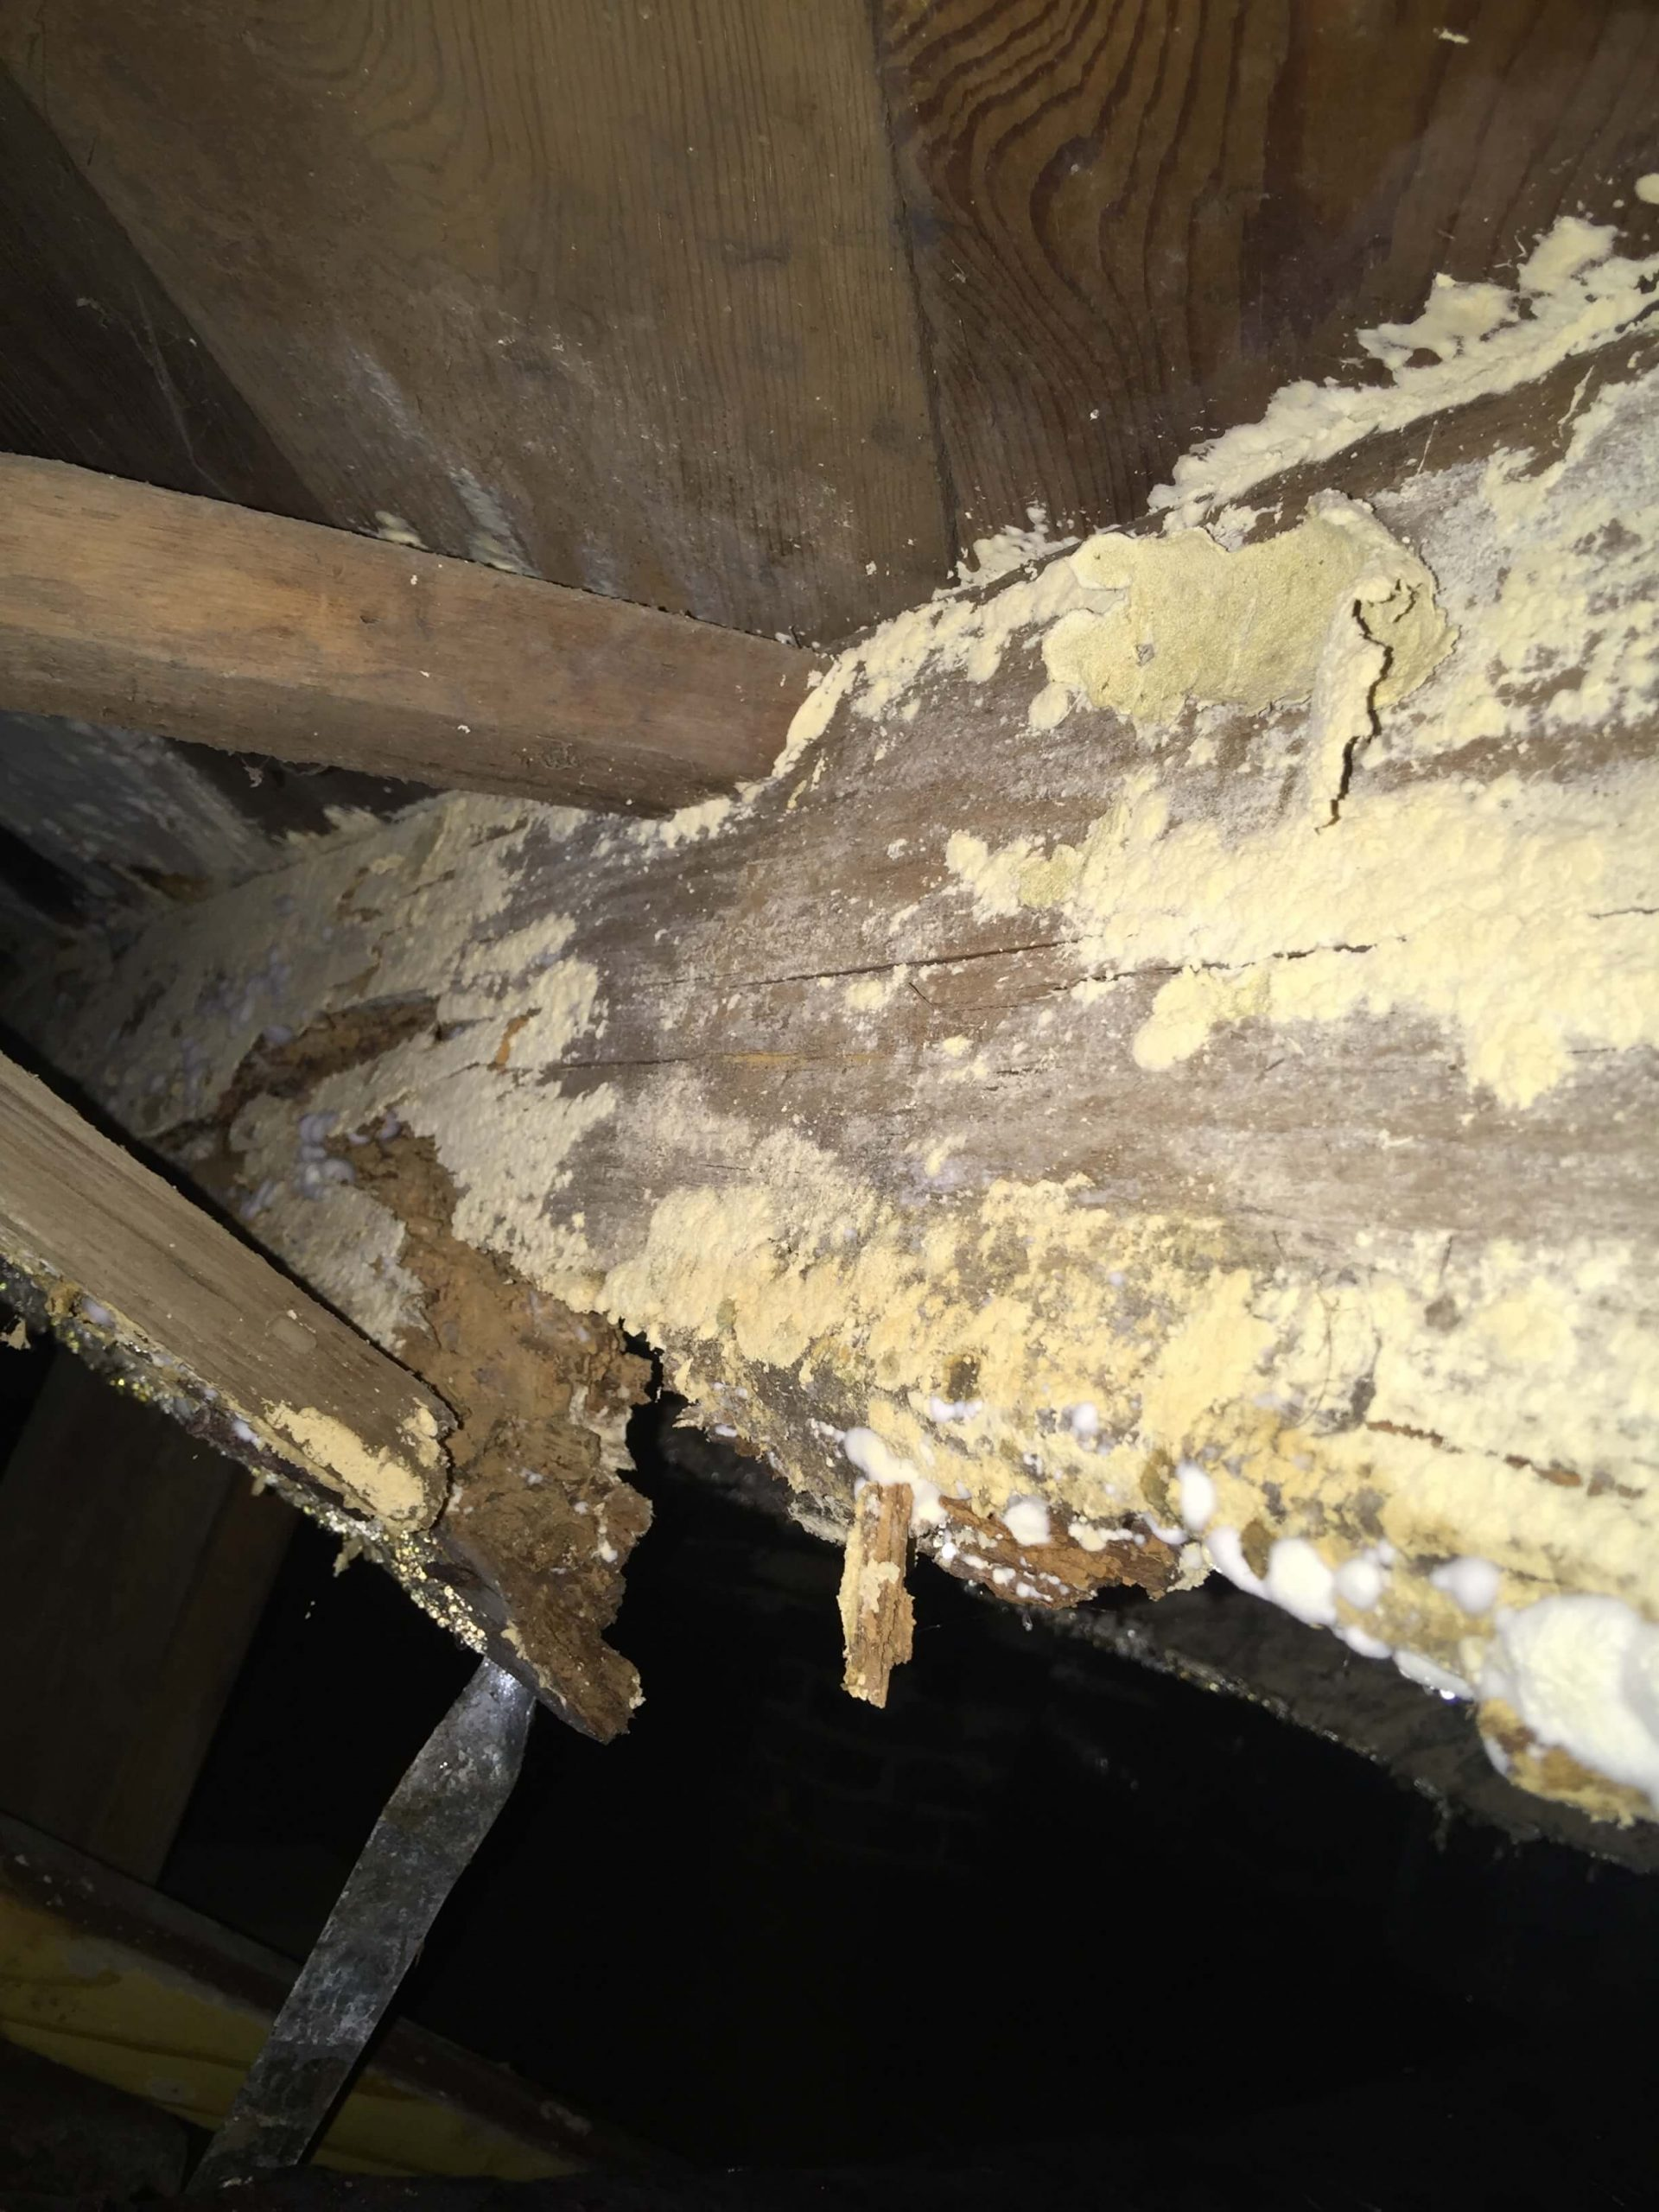 Crawlspace Fungus on Joist